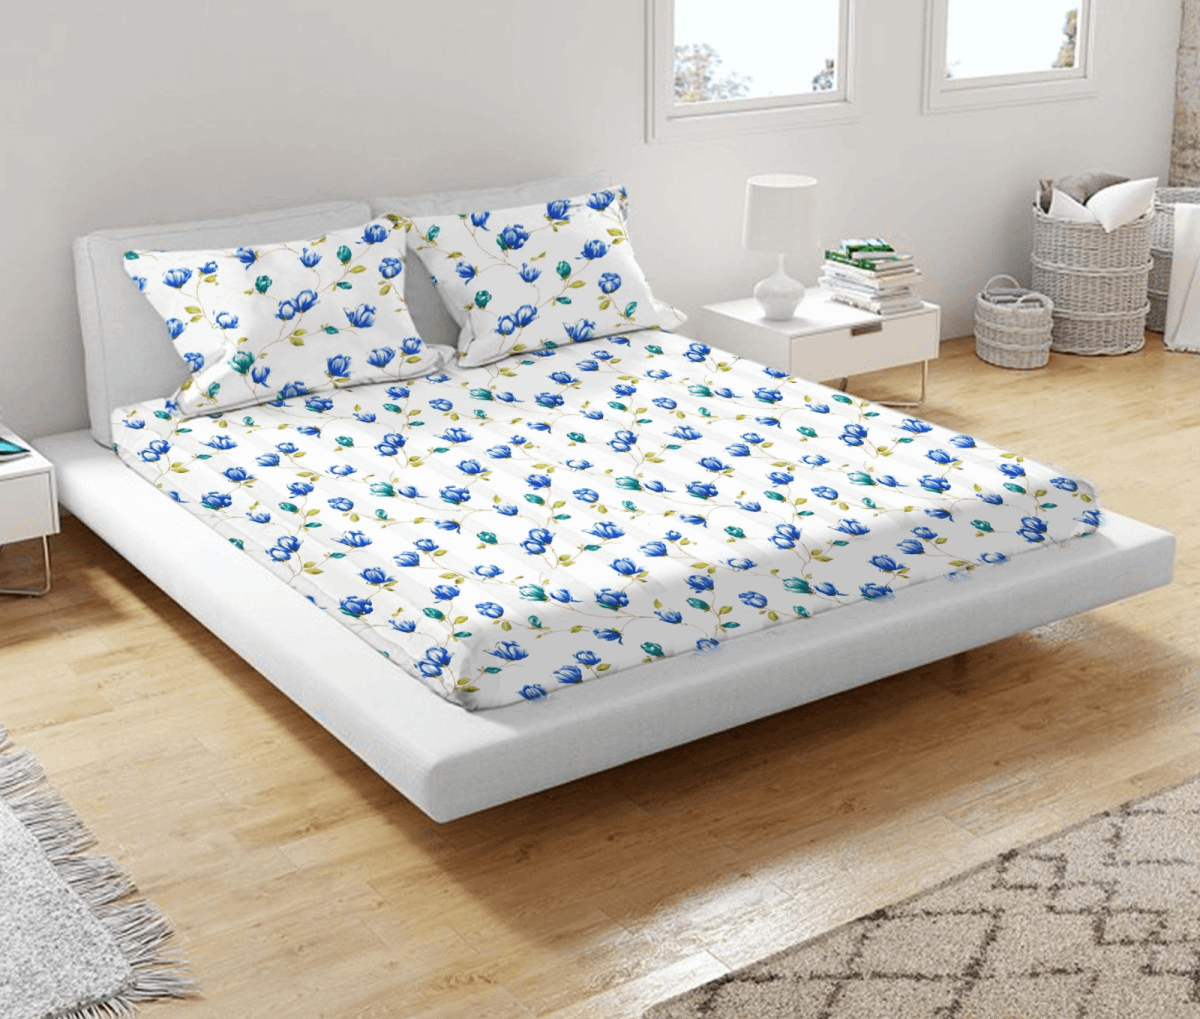 URBANA Blue & Green Flower Print 160TC 100% Cotton Double Bed Sheet with 2 Pillow Covers